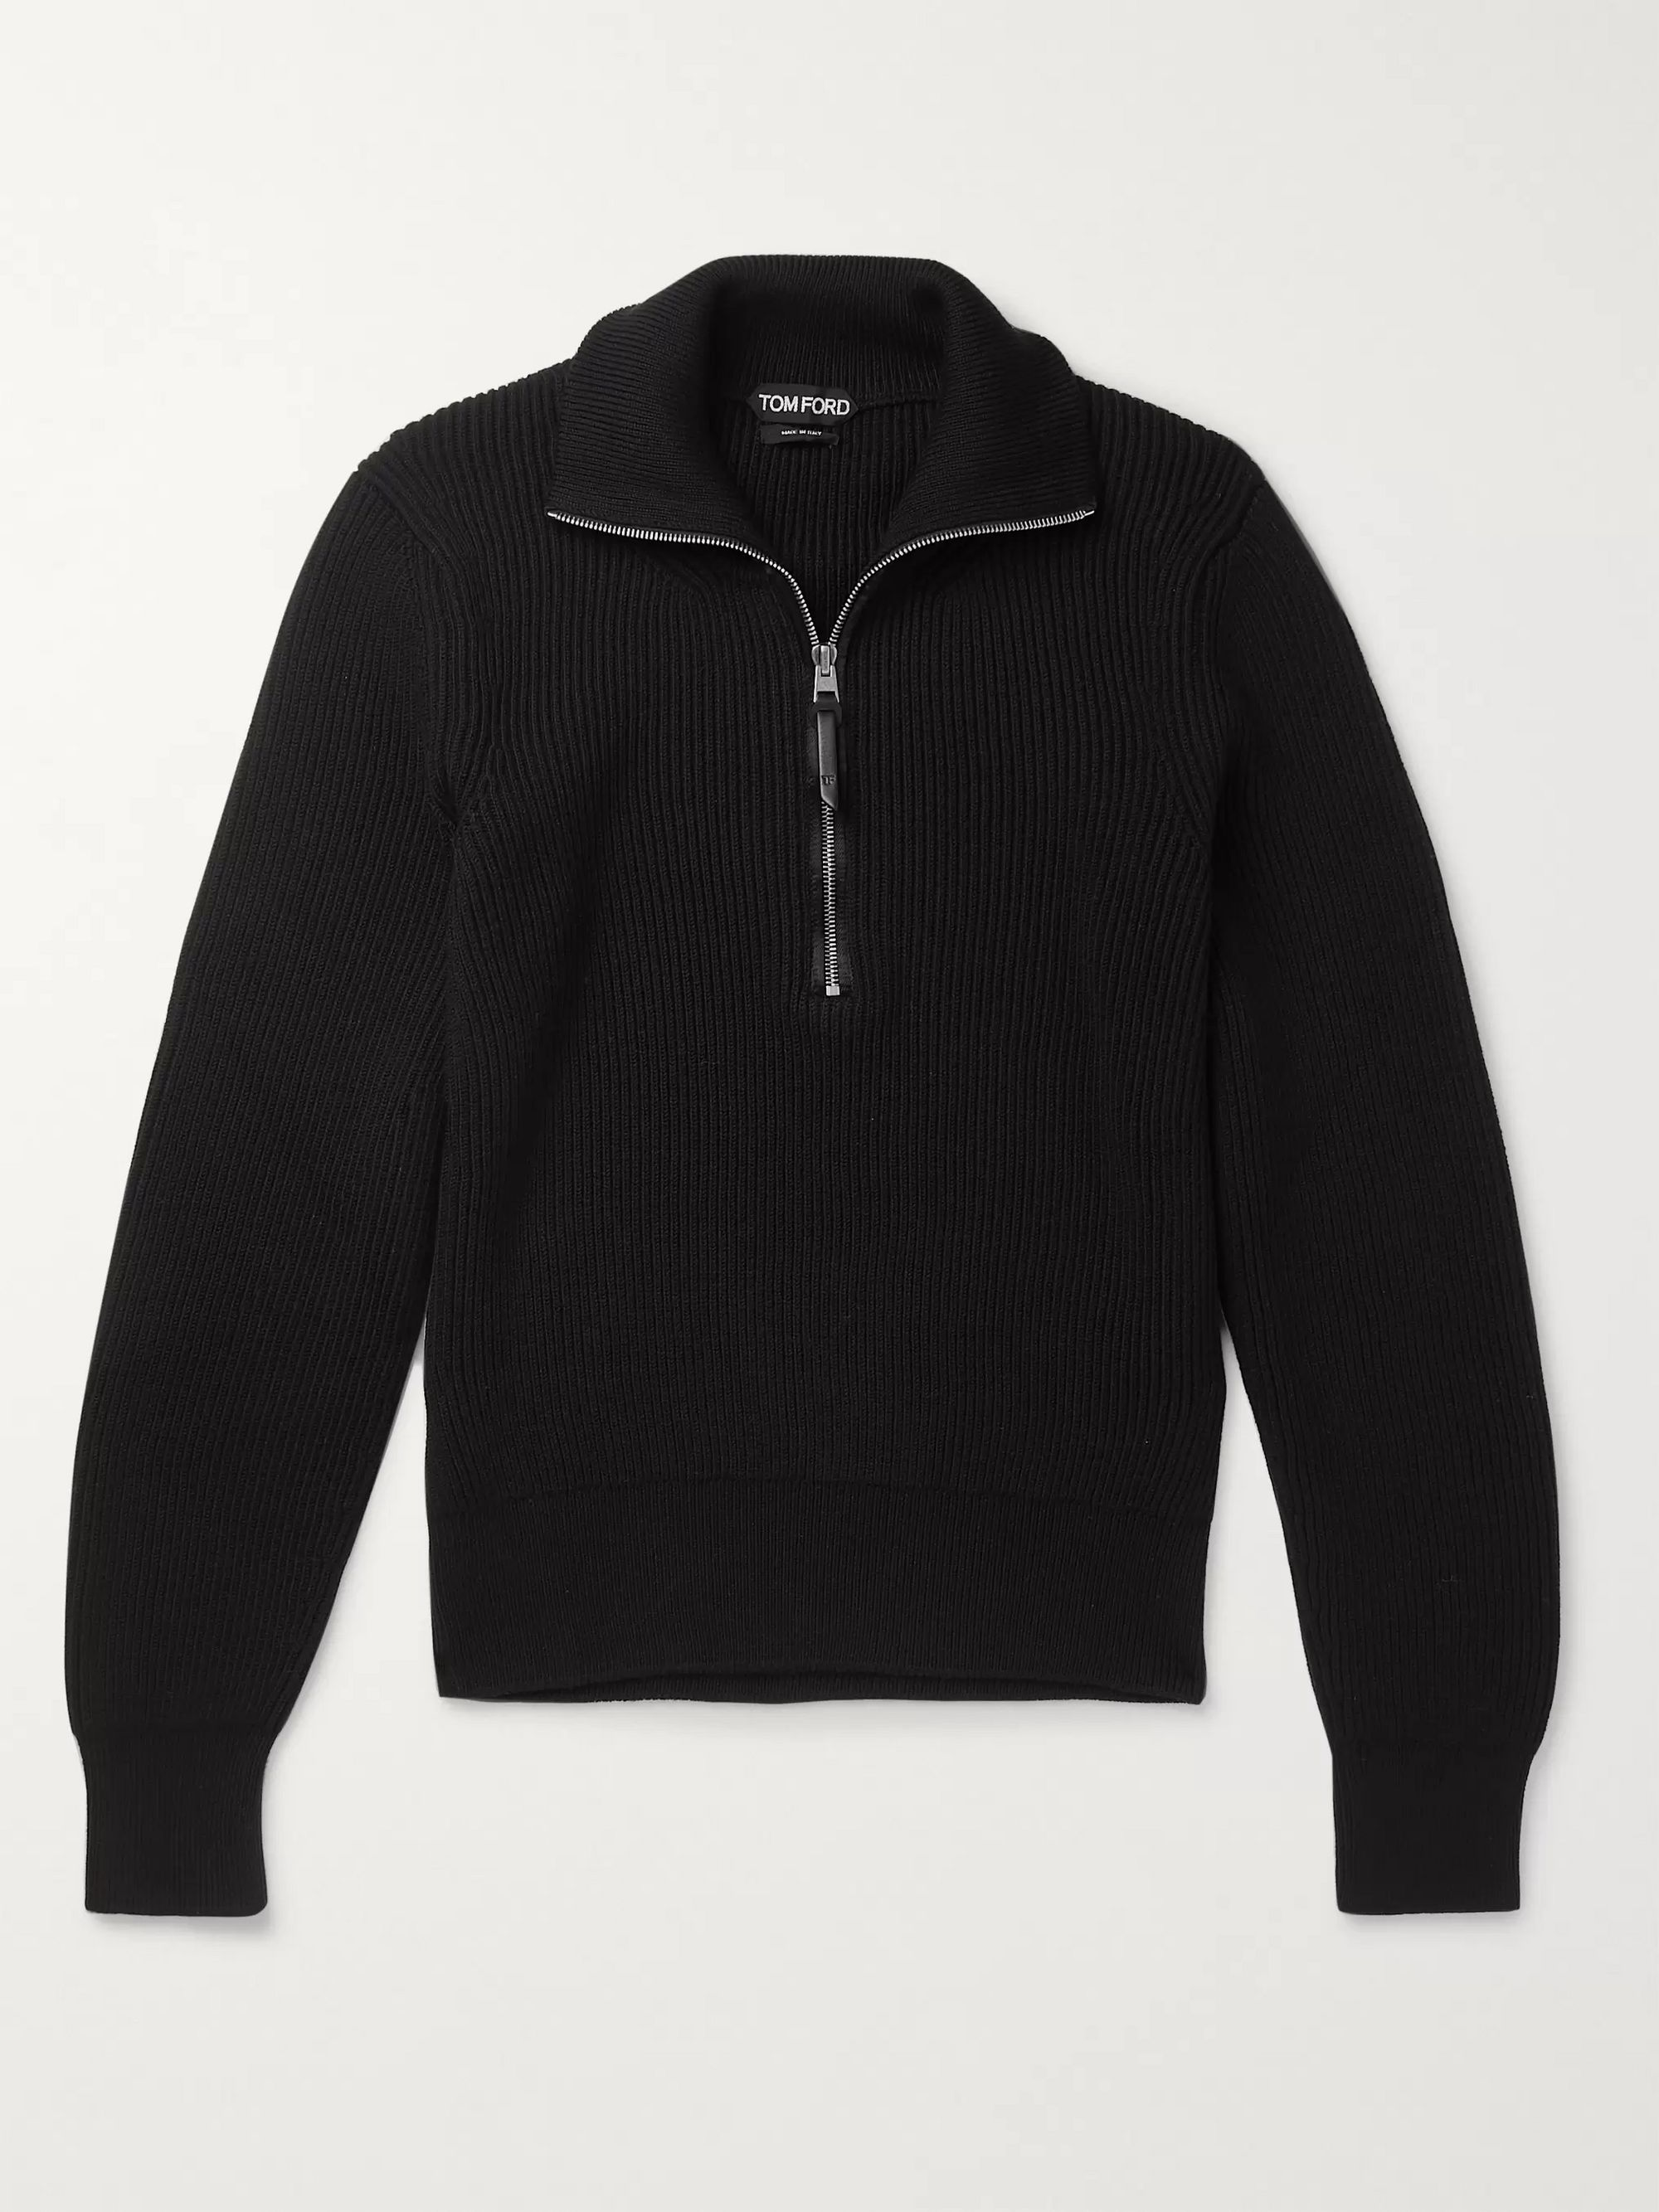 TOM FORD Slim-Fit Ribbed Wool Zip-Up Sweater